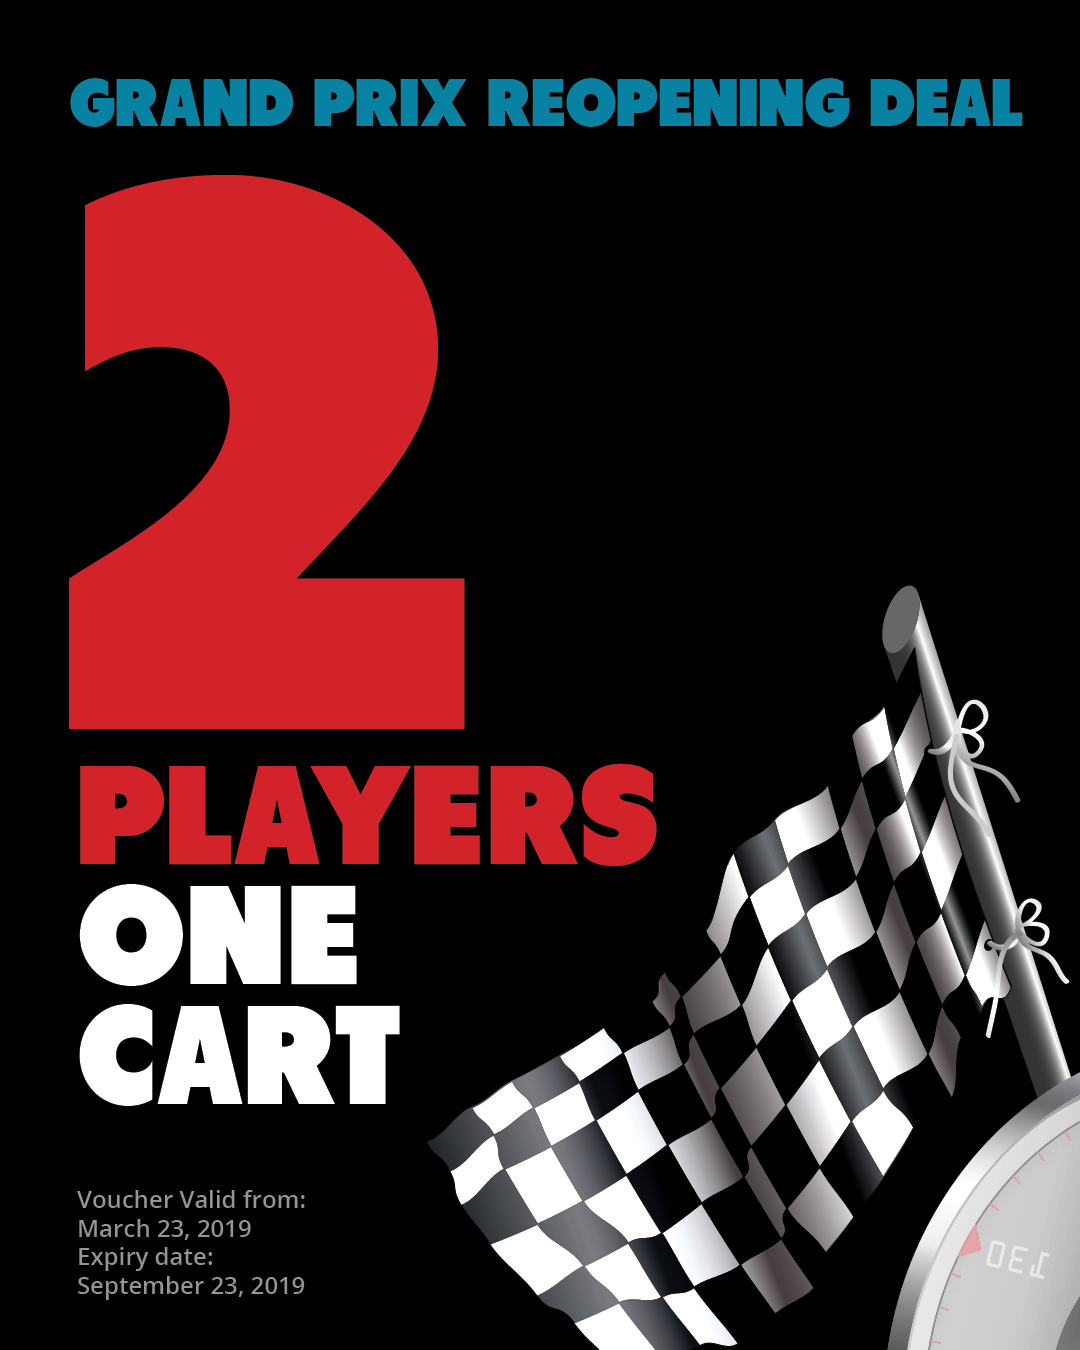 SPECIAL | Golf for 2 players with 1 cart 19GP2PLAYERS